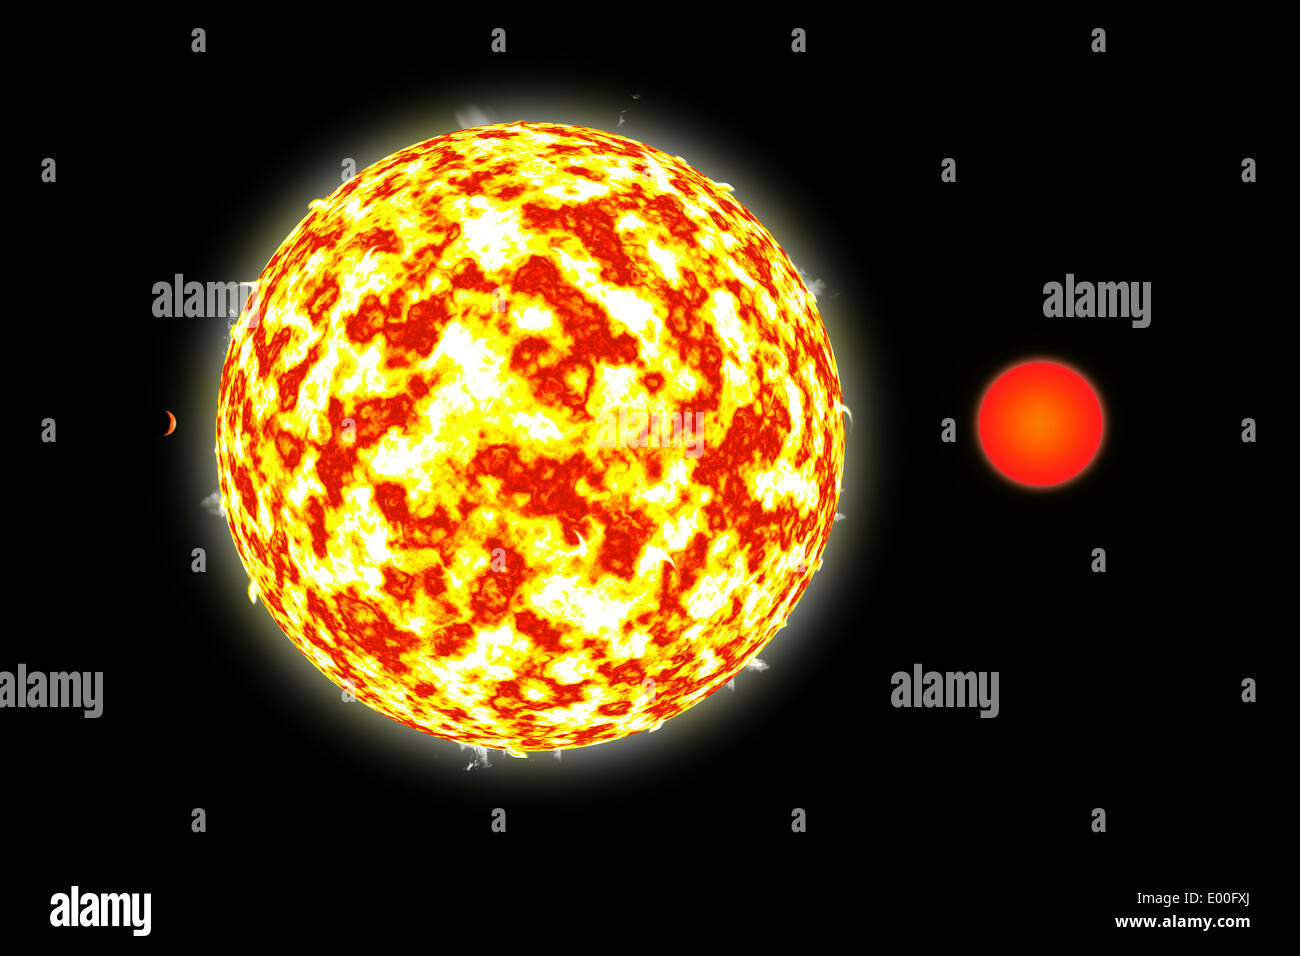 An artist's depiction of a binary star system with a close orbiting planet. - Stock Image